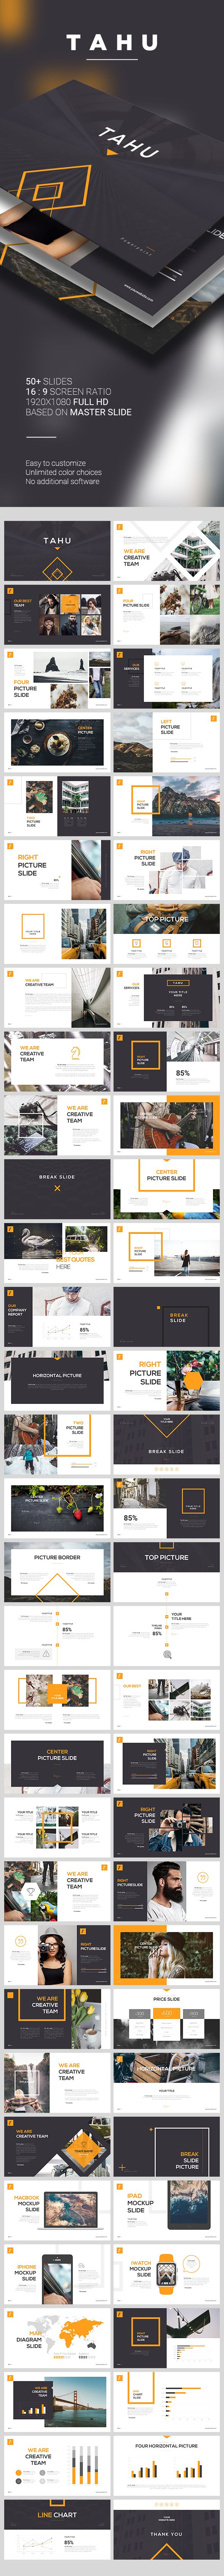 32 best powerpoint images on pinterest infographic template and